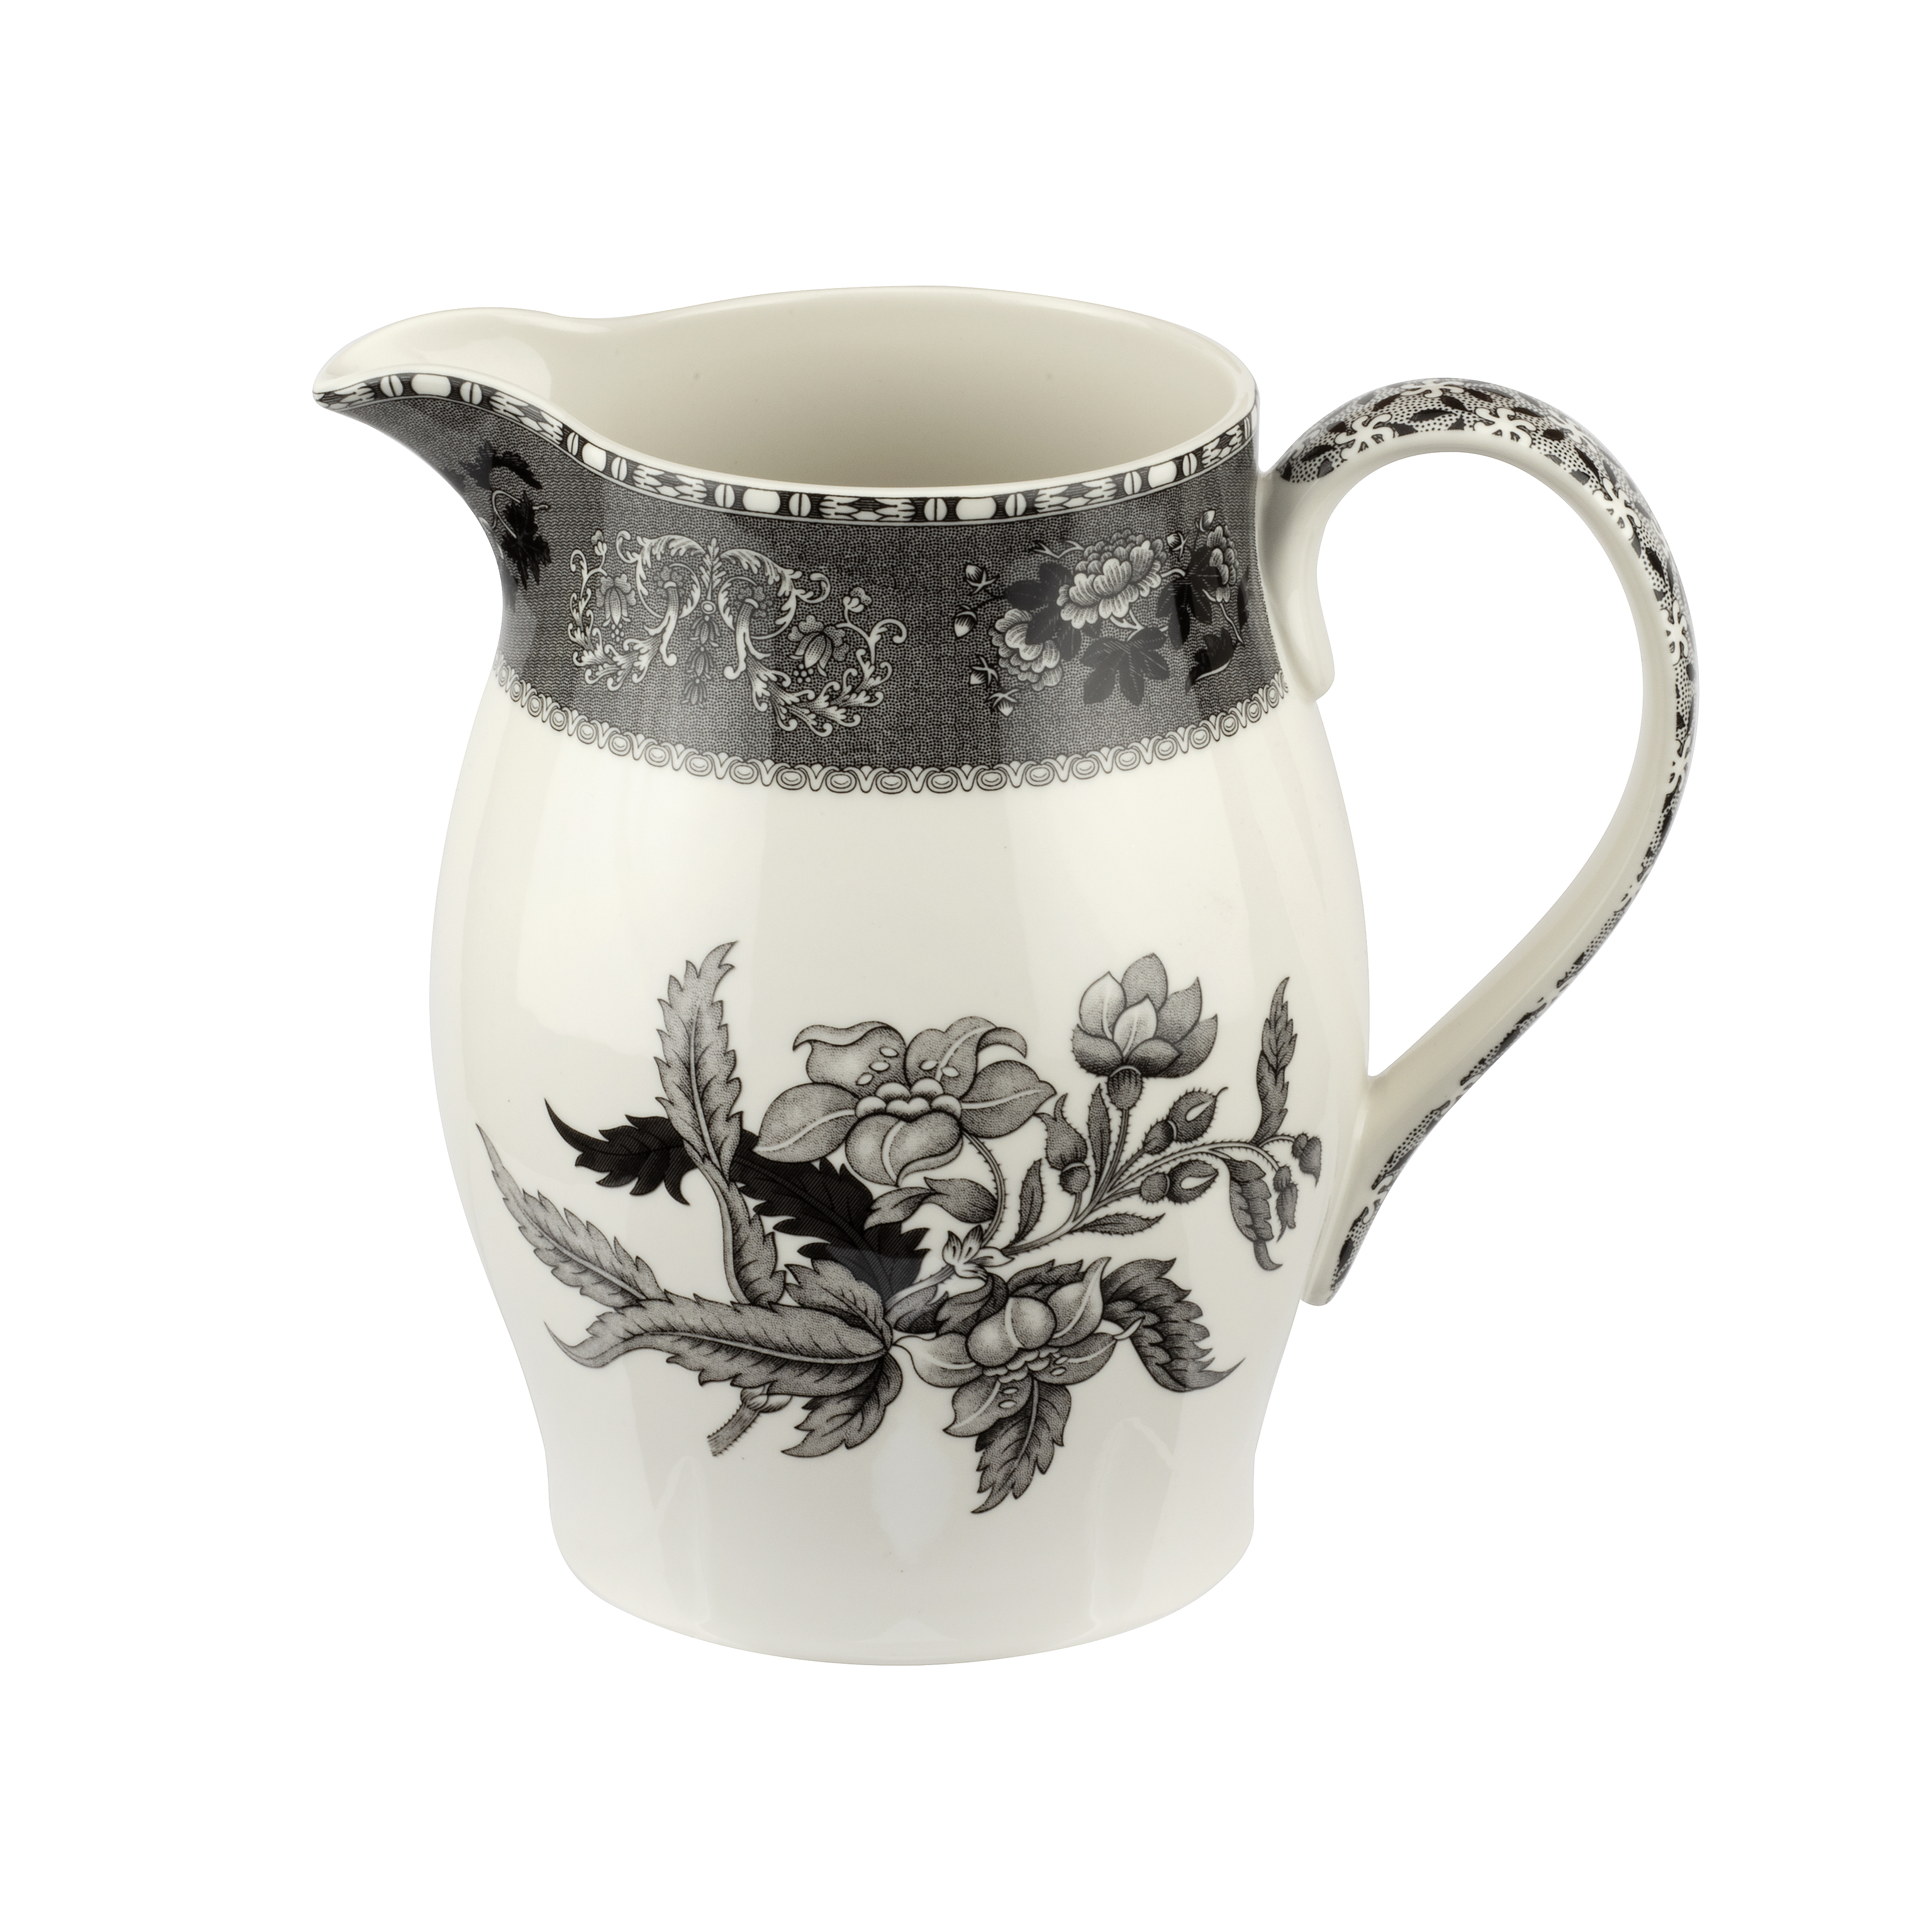 Spode Heritage 3.5 Pint Pitcher (Camilla) image number 0